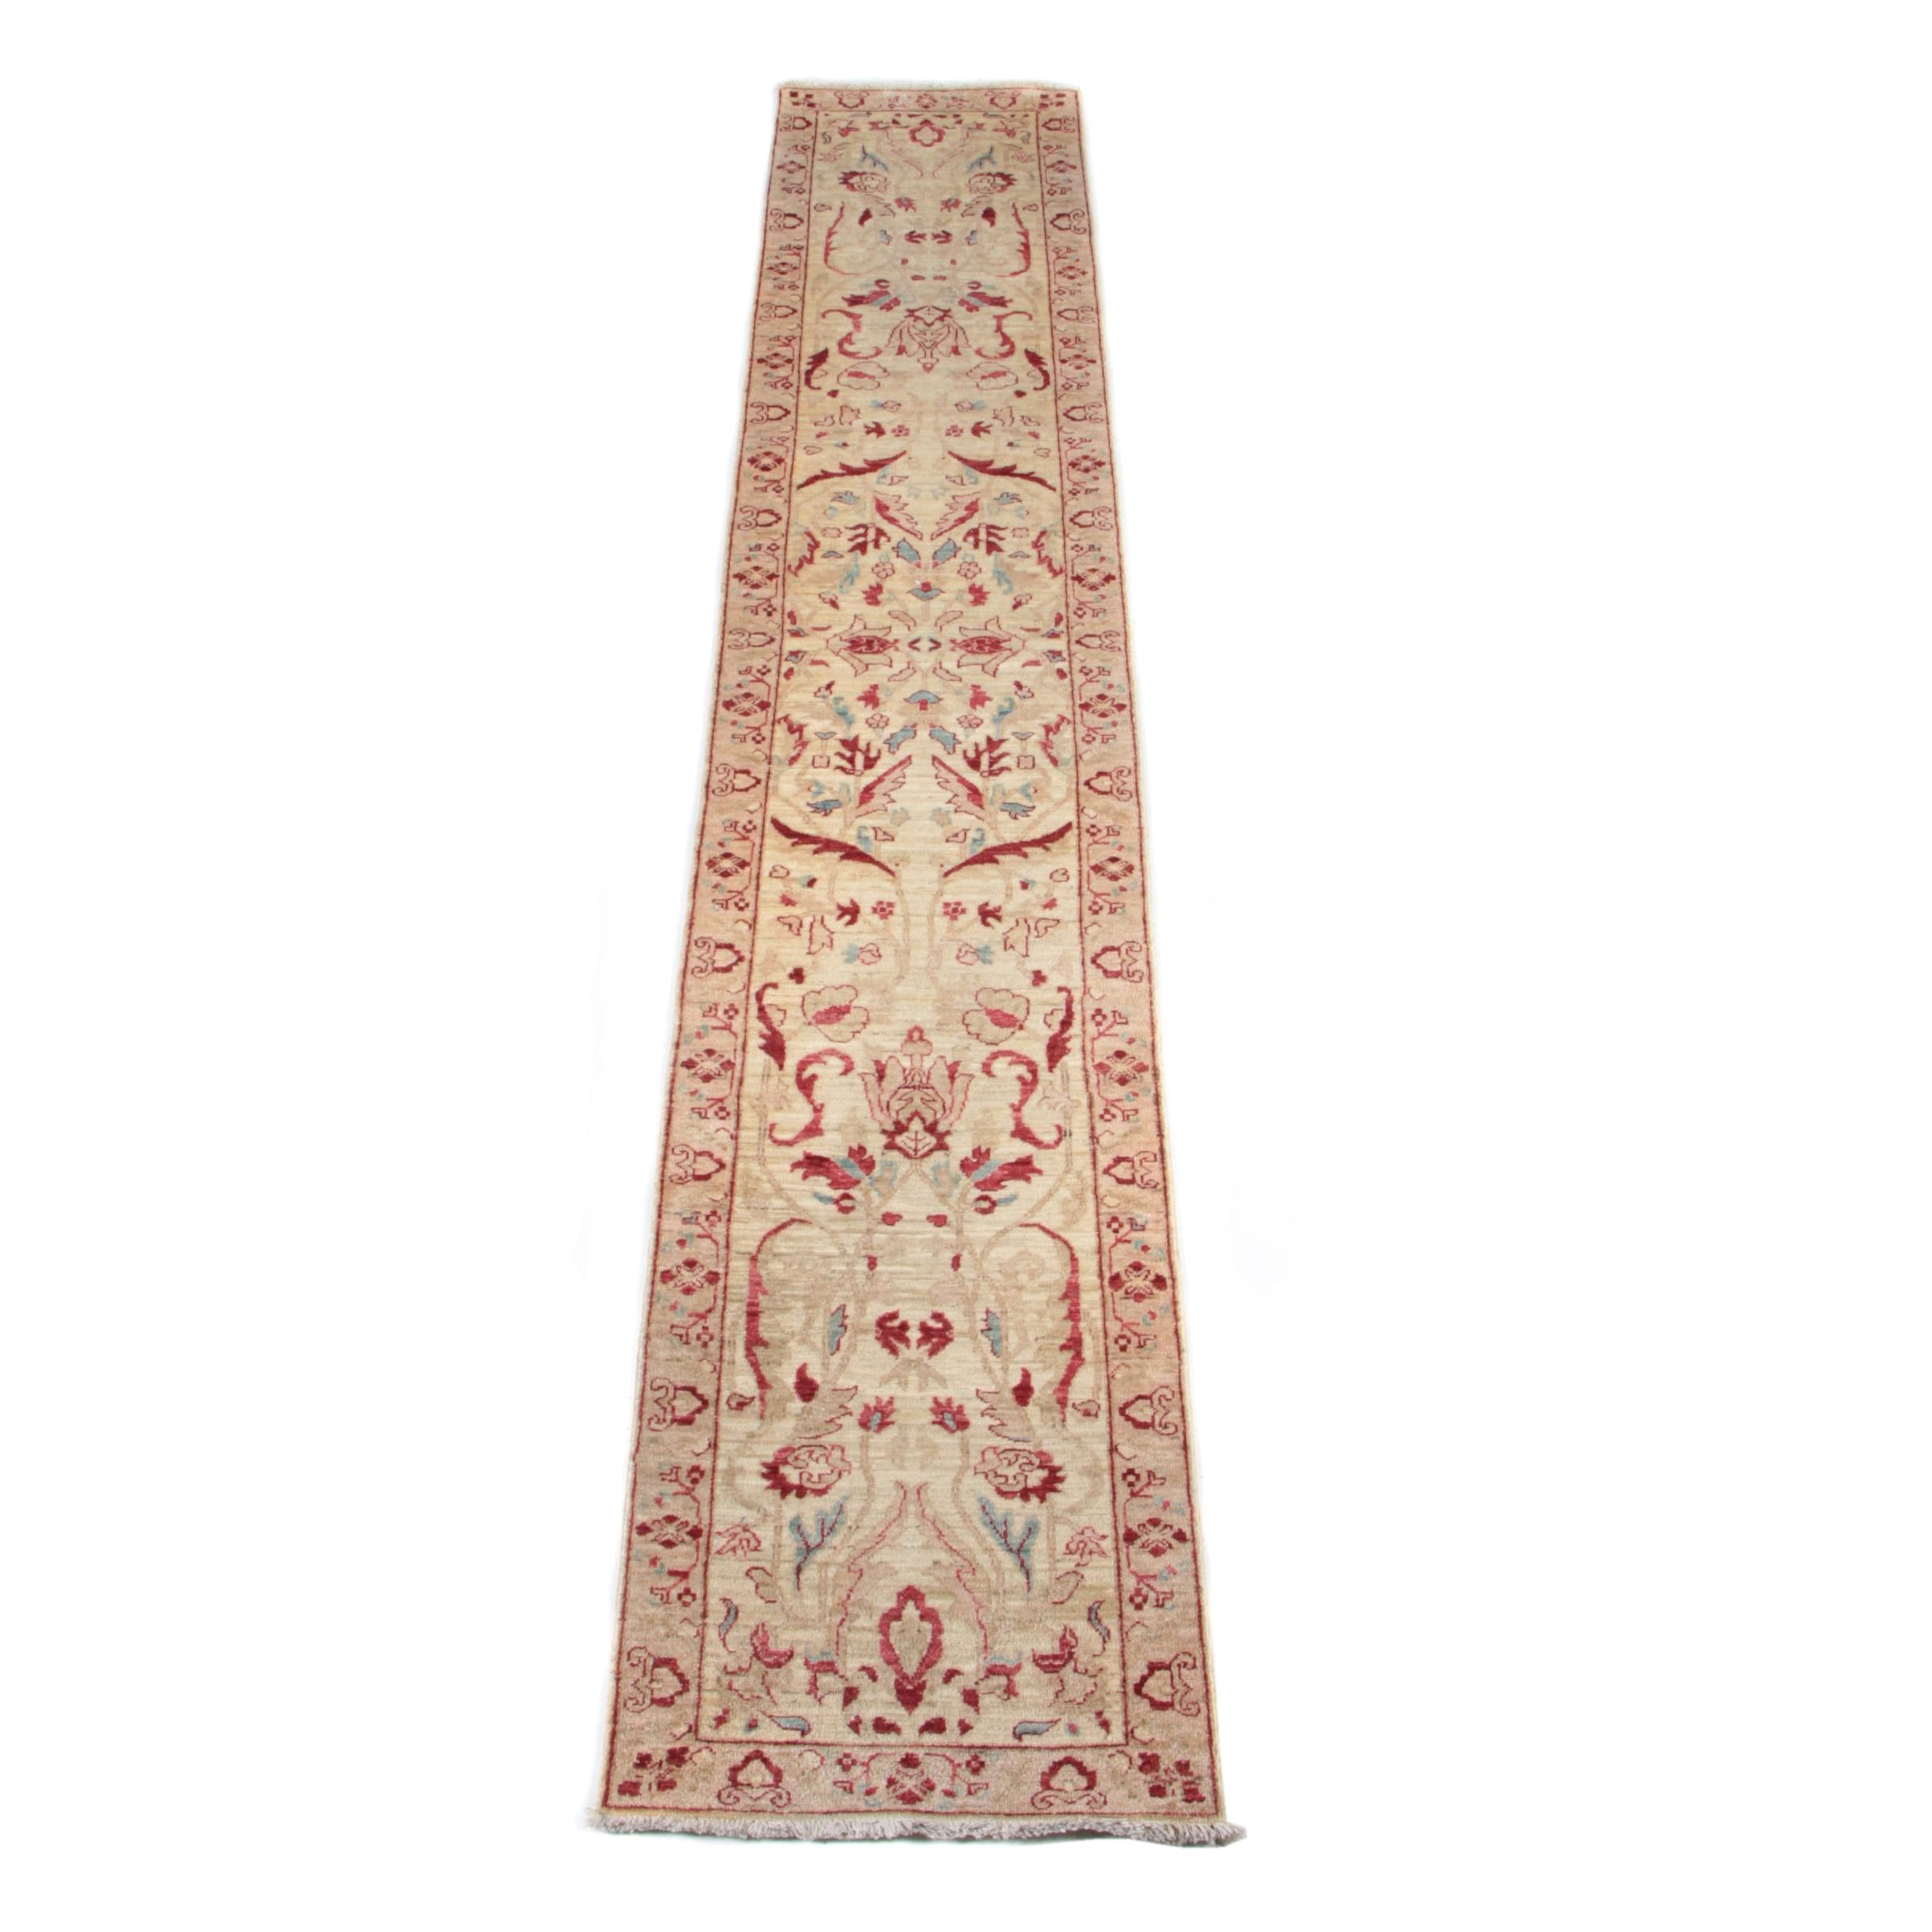 Hand-Knotted Indian Agra Carpet Runner